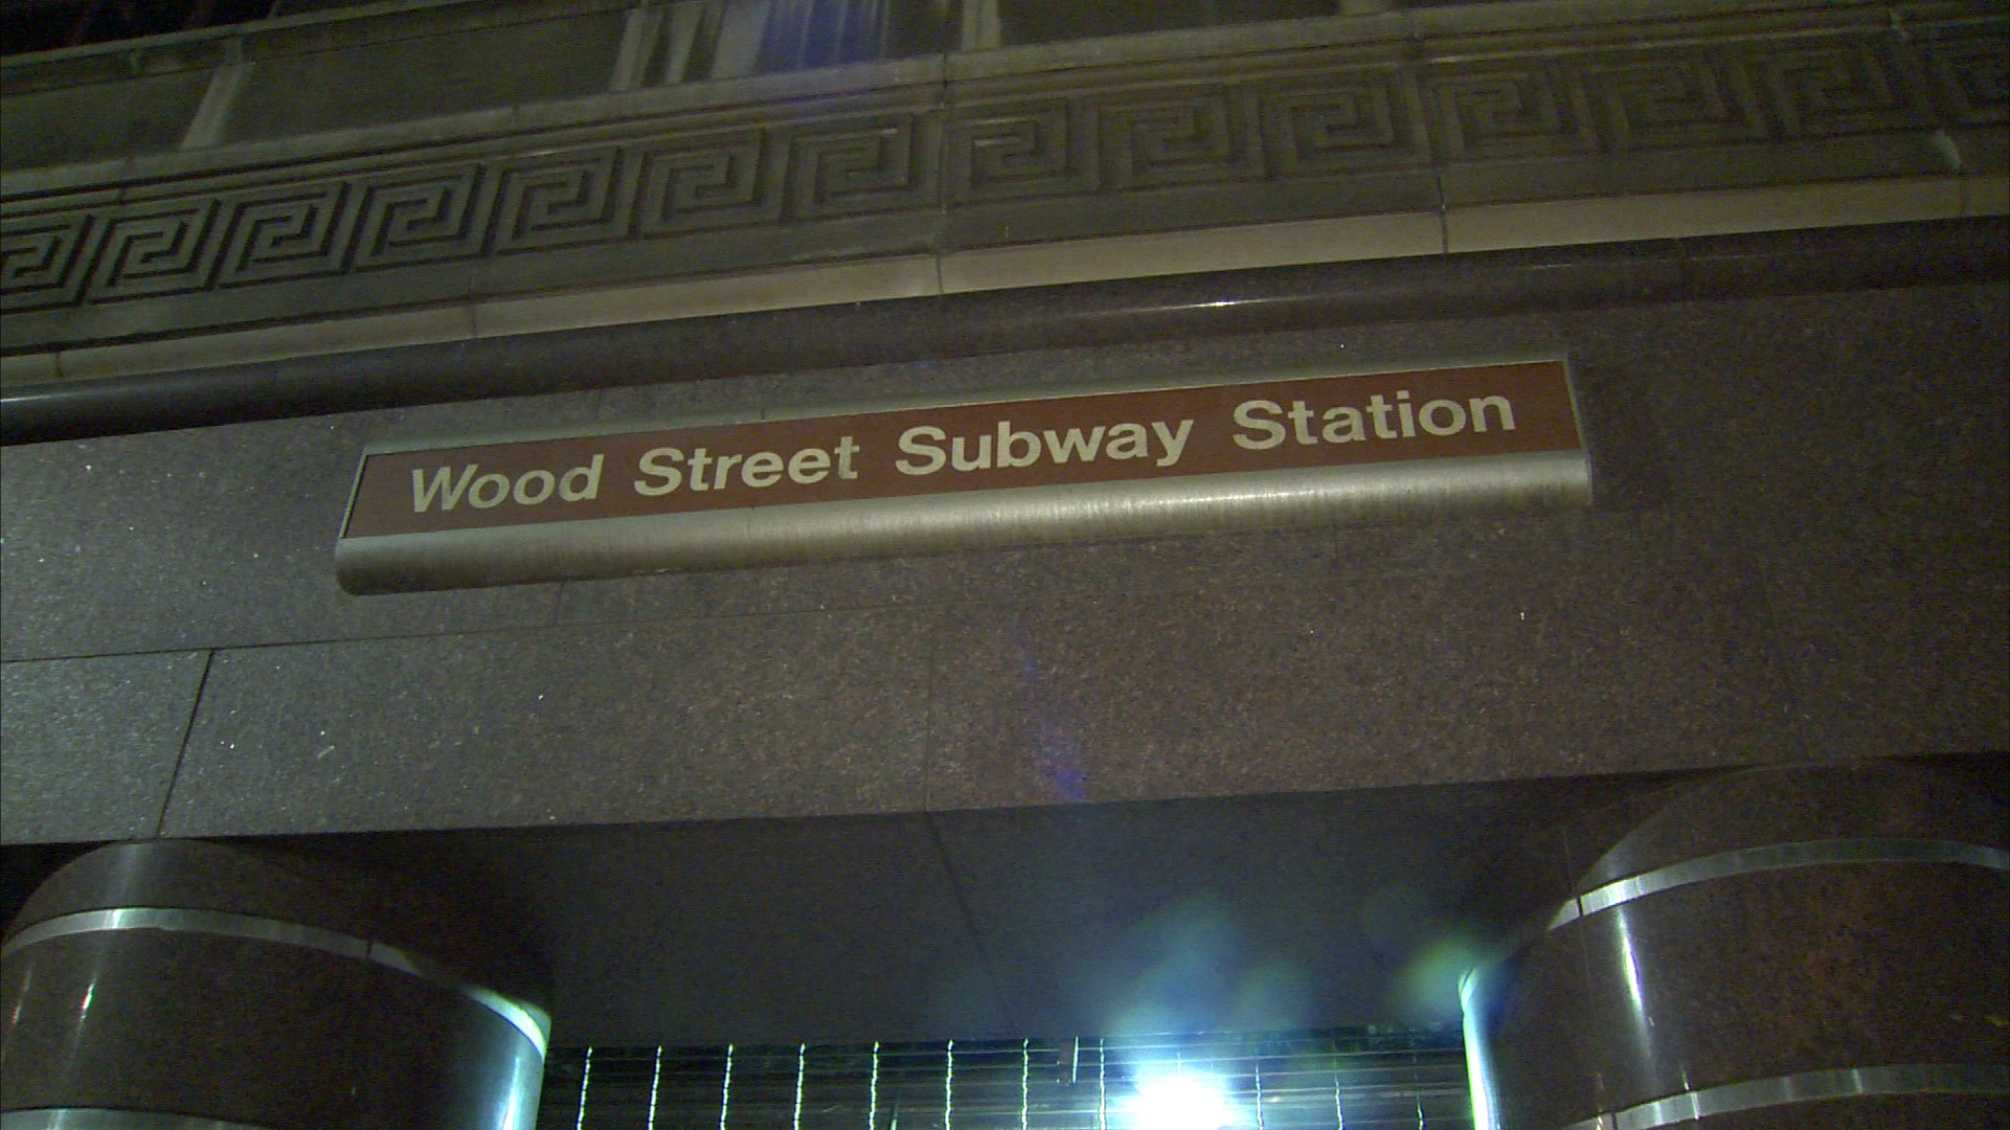 The Wood Street subway station for the T.